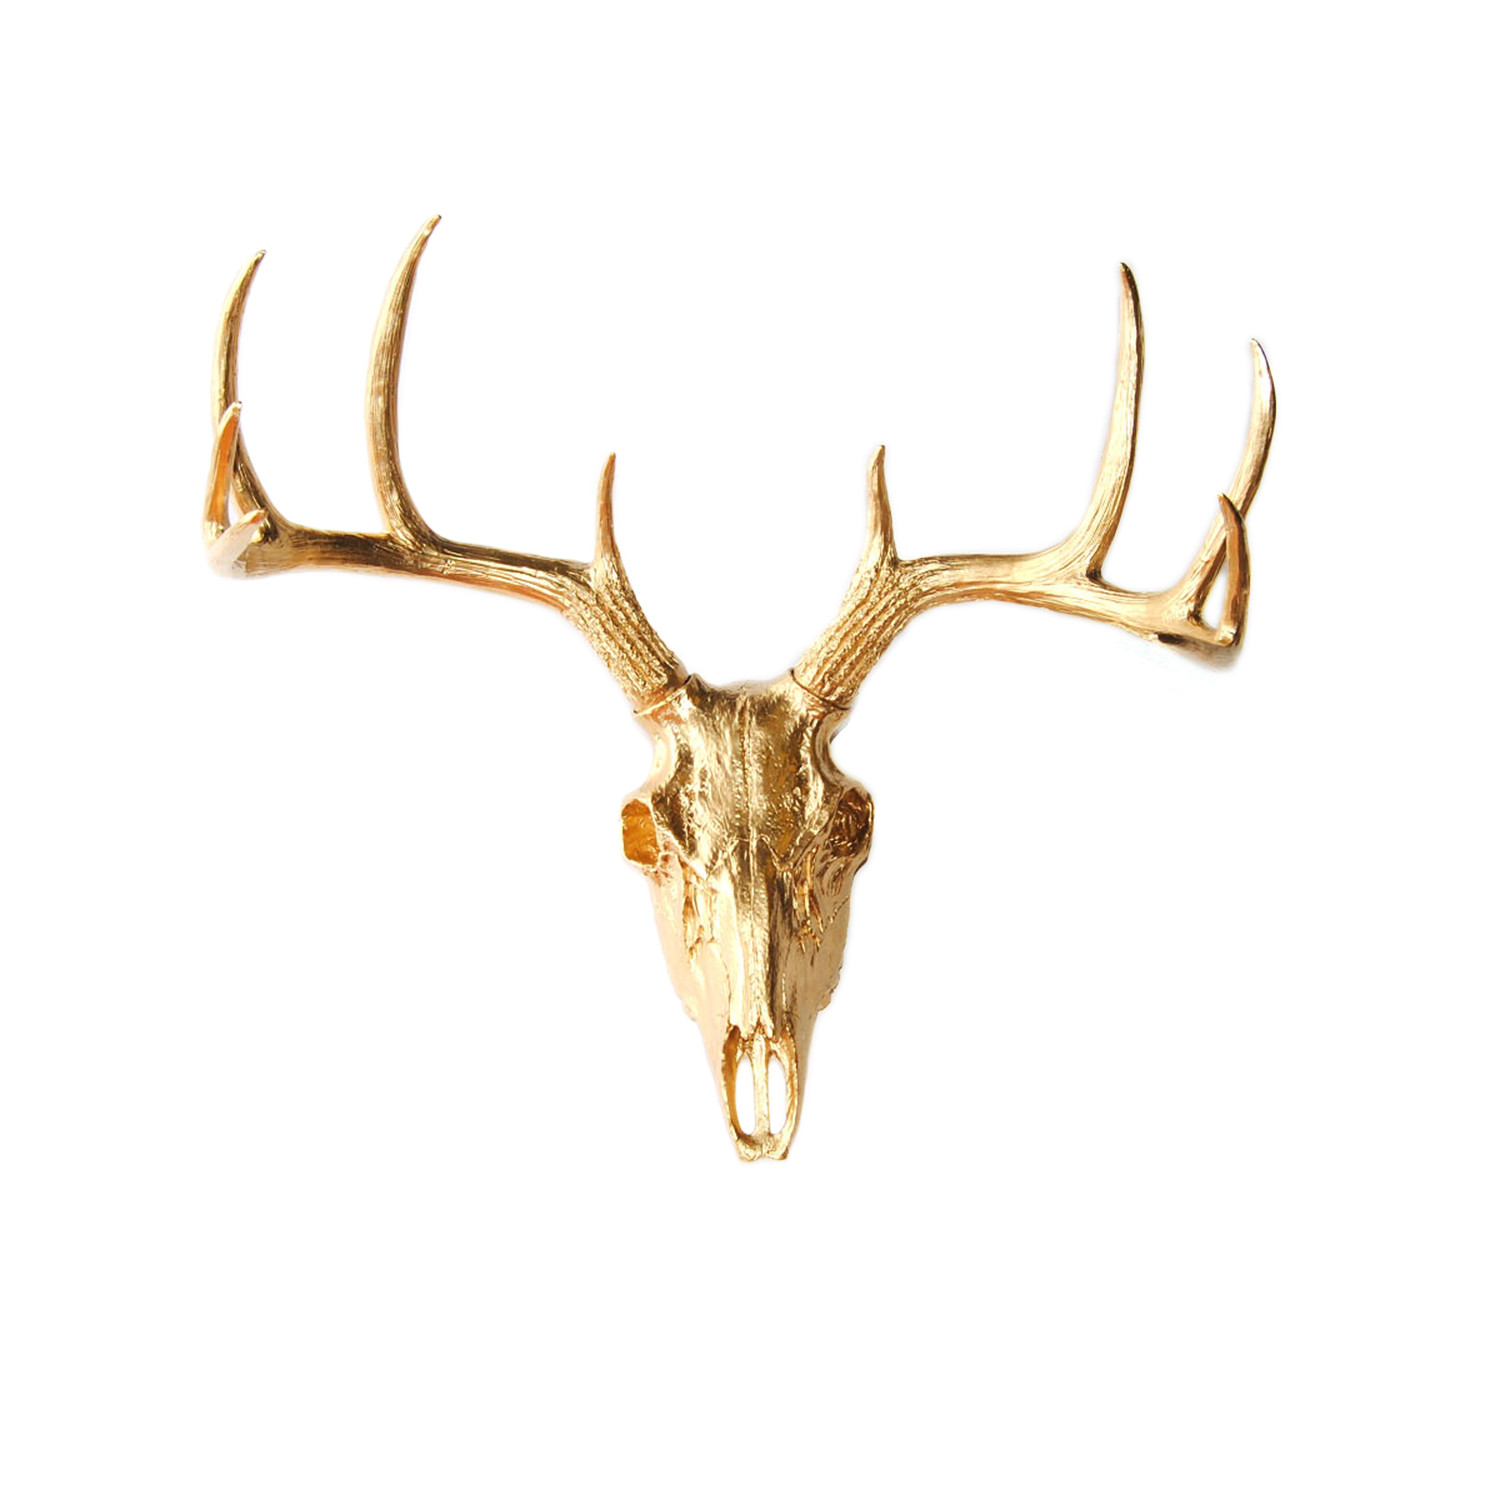 Fake Deer Skull And Antlers The Gold Faux Deer Skull White Faux Taxidermy Touch Of